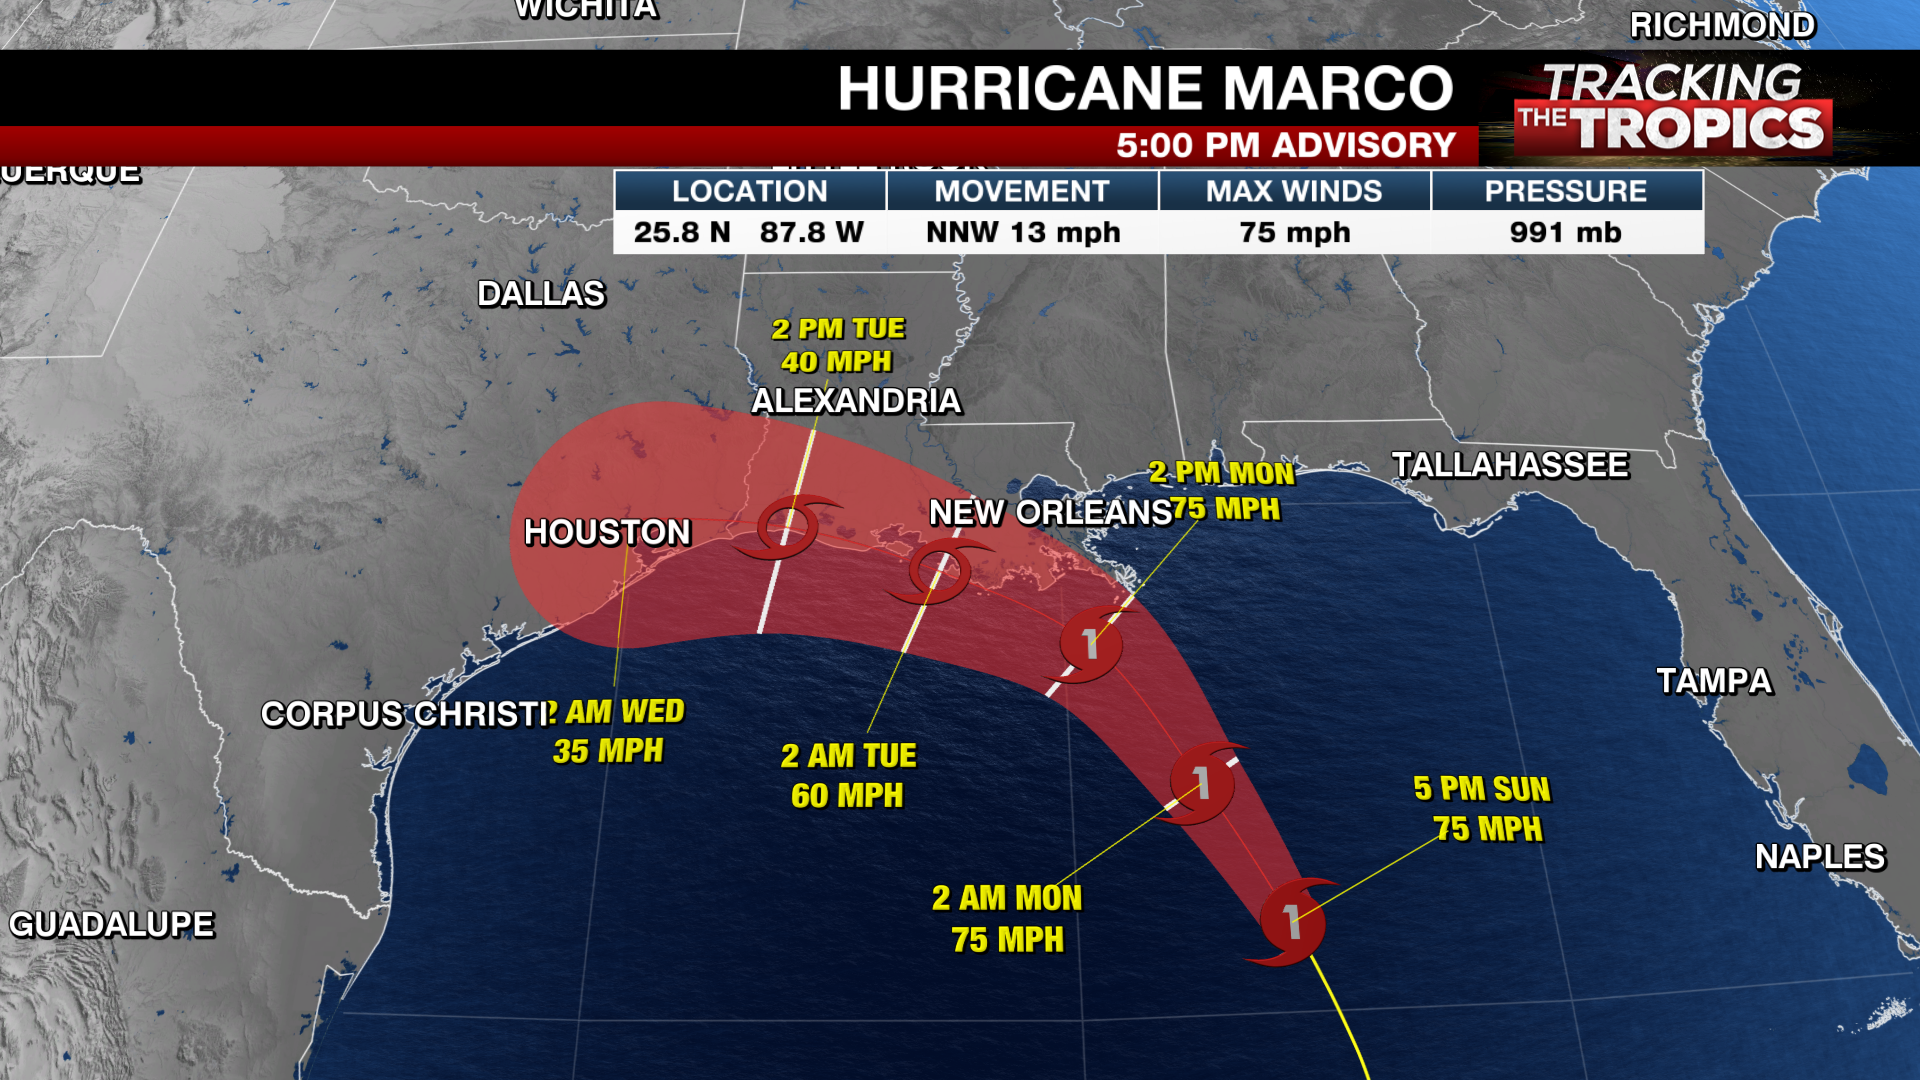 Tracking The Tropics Marco Weakens To Tropical Storm As It Moves Over The Gulf Laura Continues To Strengthen Abc27